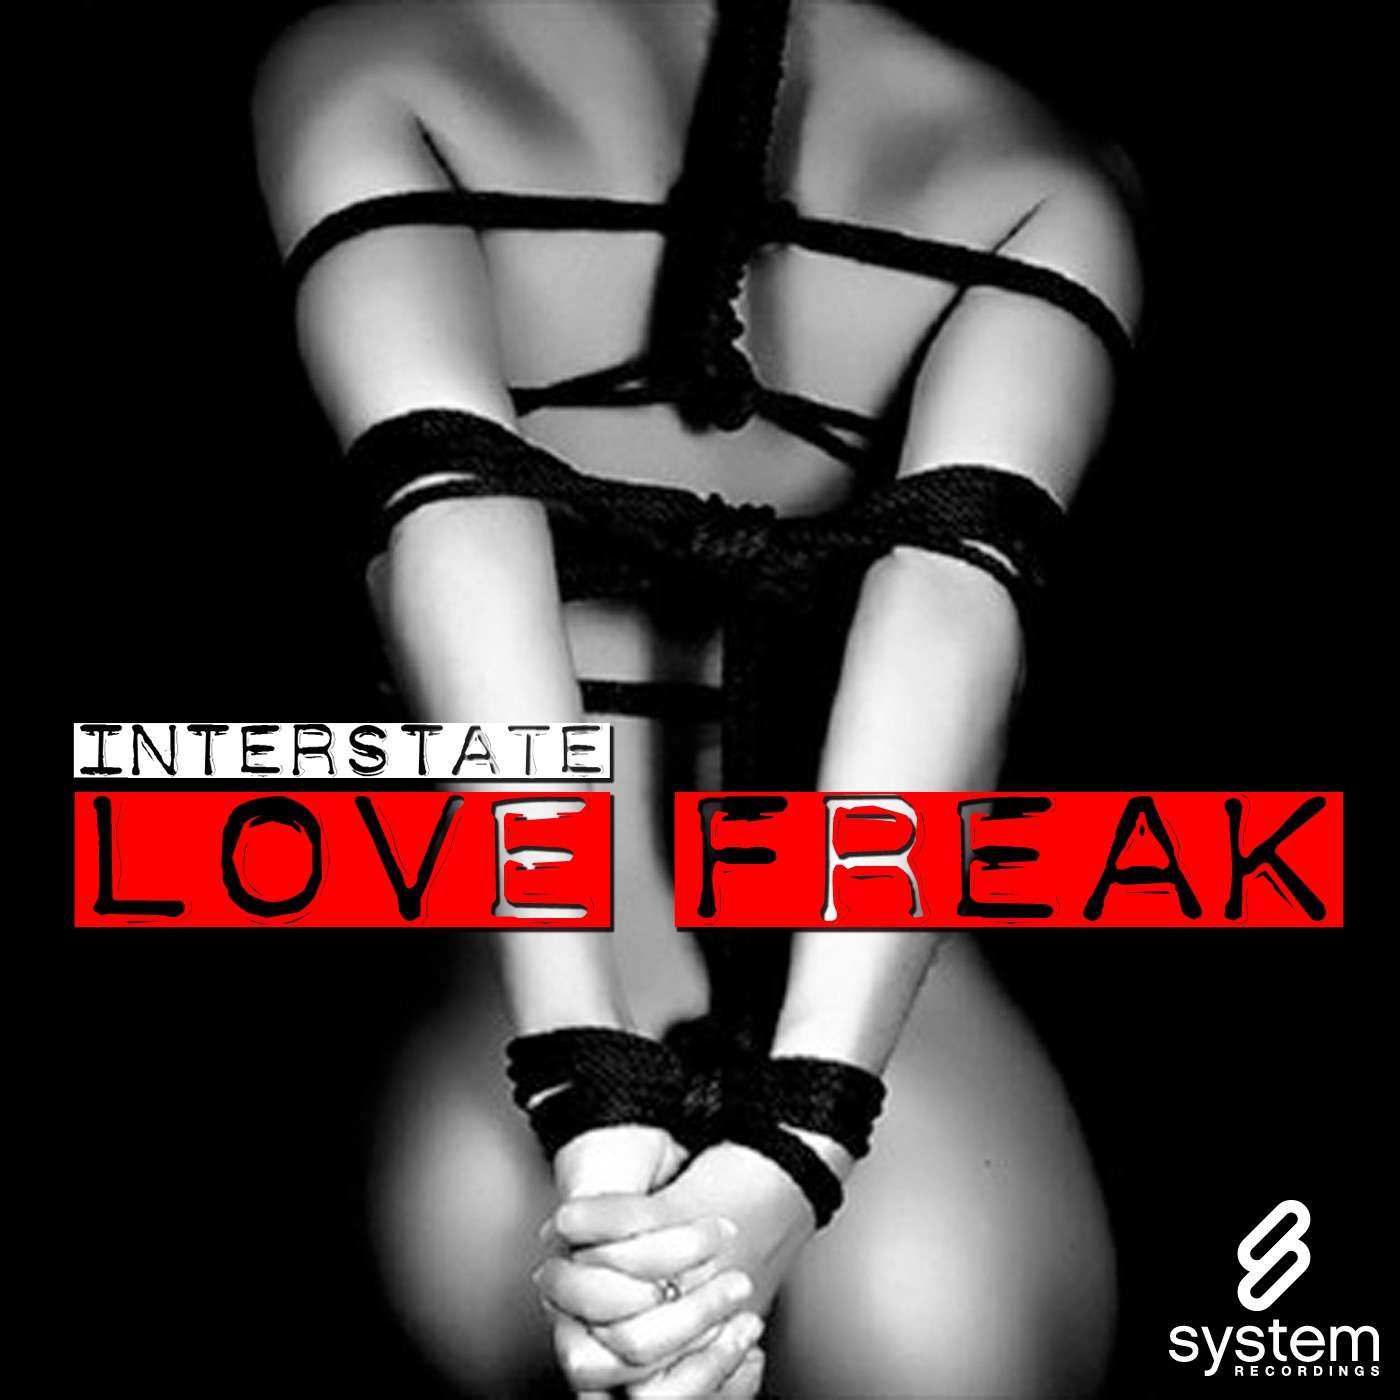 Love Freak